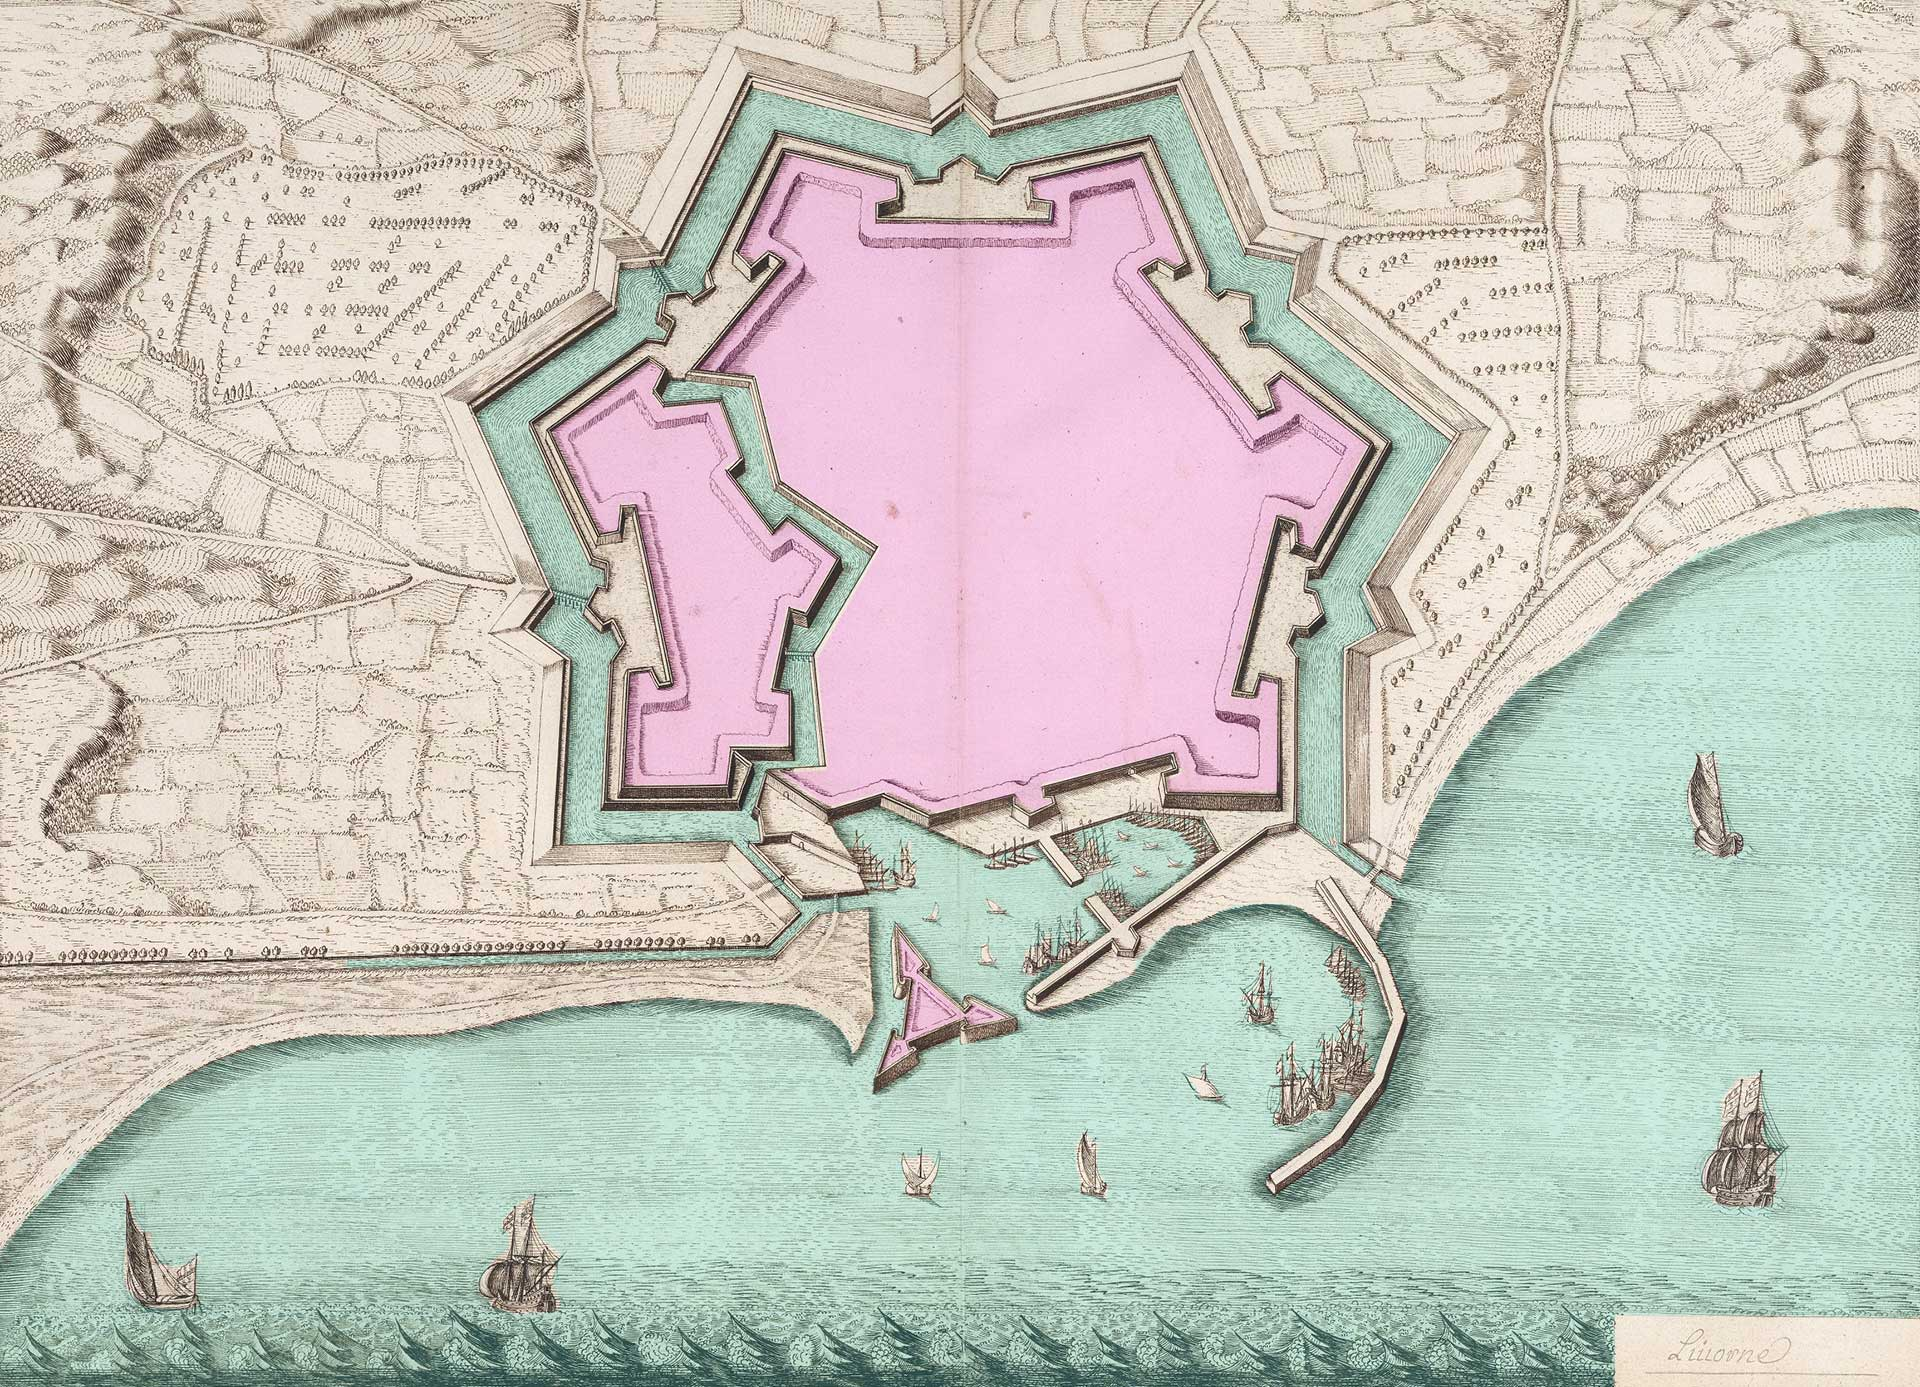 Elaborazione grafica di una mappa di Livorno, tratta da una raccolta del 1650 (David Rumsey Map Collection)